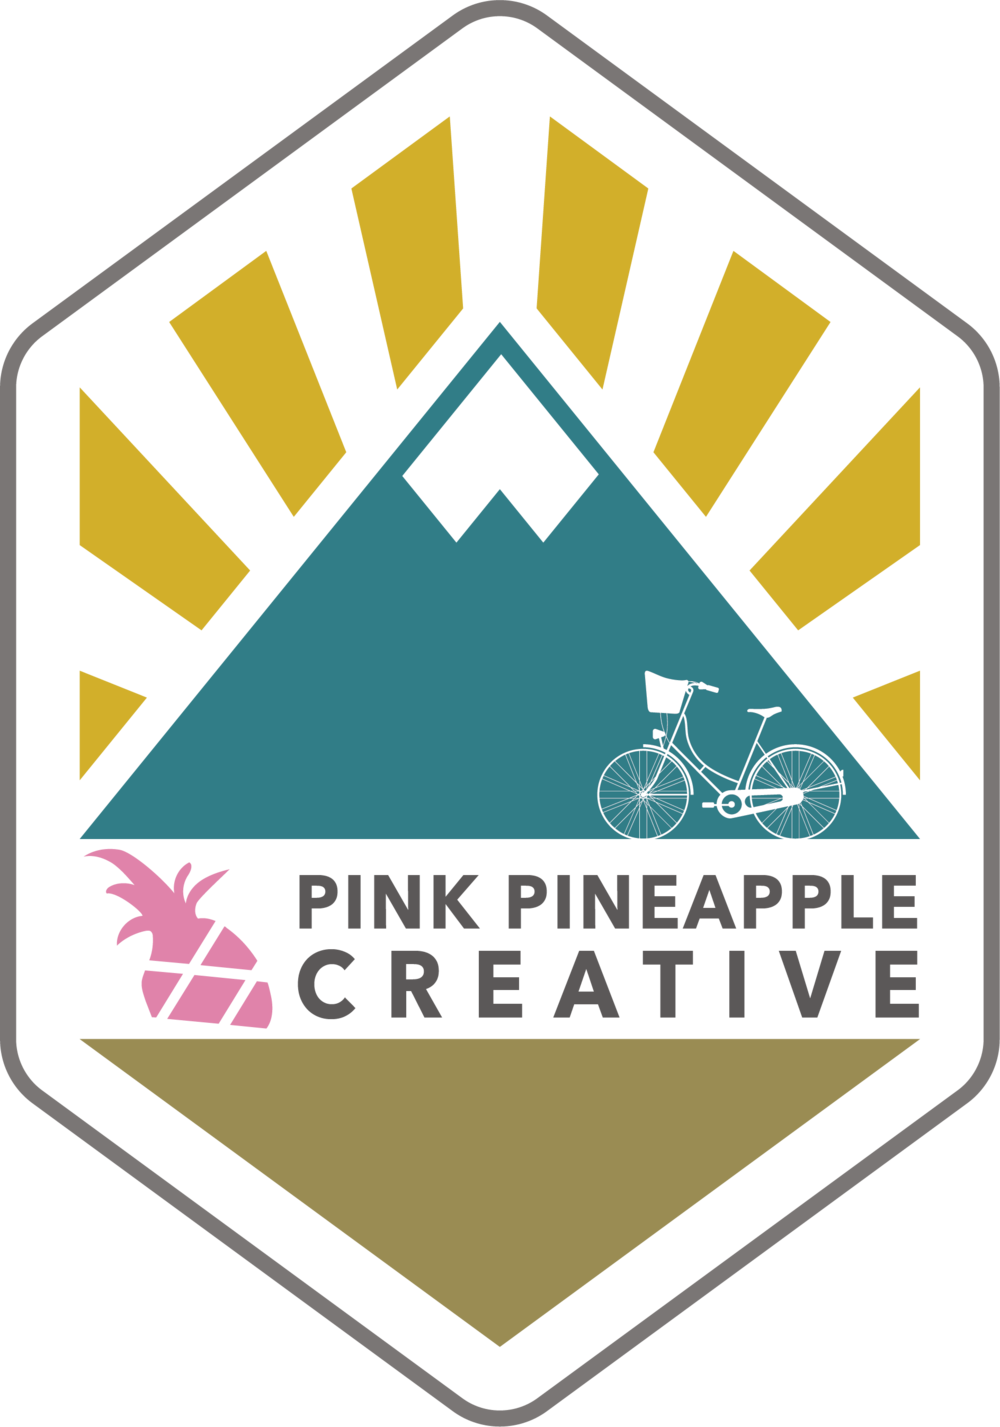 pink pineapple SUMMER 2018 LOGO bike.png